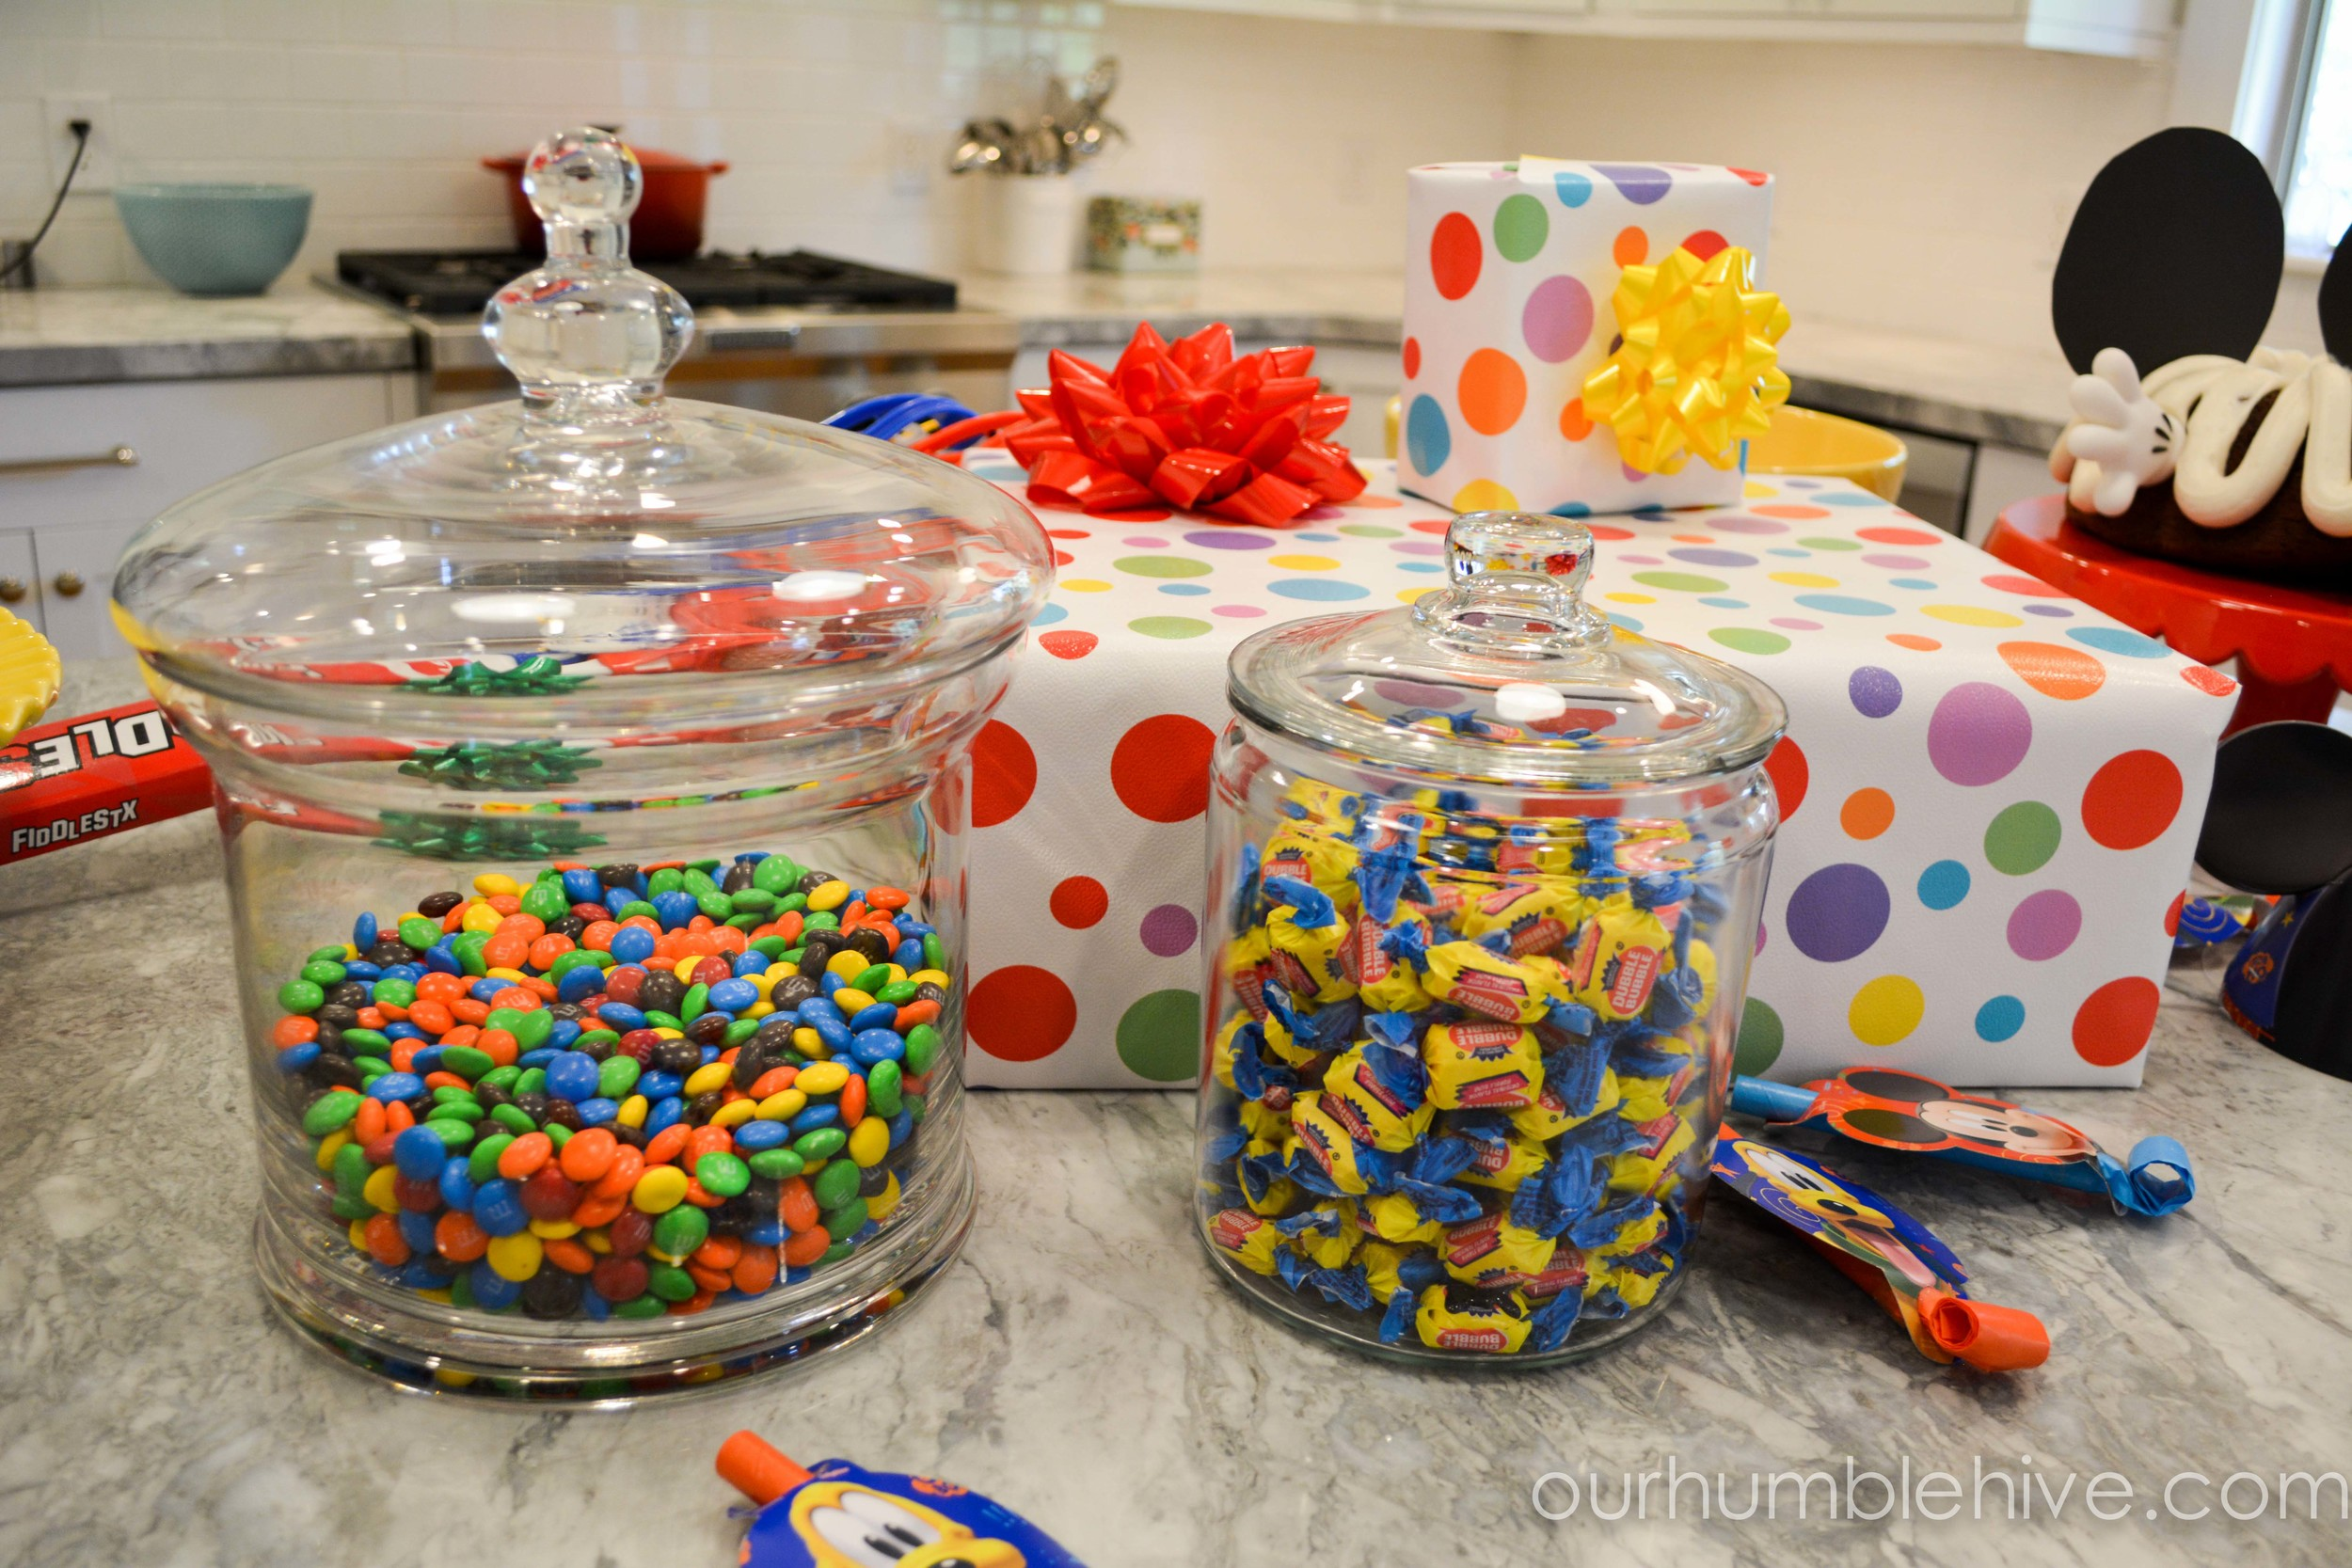 Simple and Inexpensive Birthday Party Decor Tips and Tricks     Our     Another simple and functional way to decorate is using glass jars full of  candy  Not only can your party guests enjoy munching on their favorite  candy